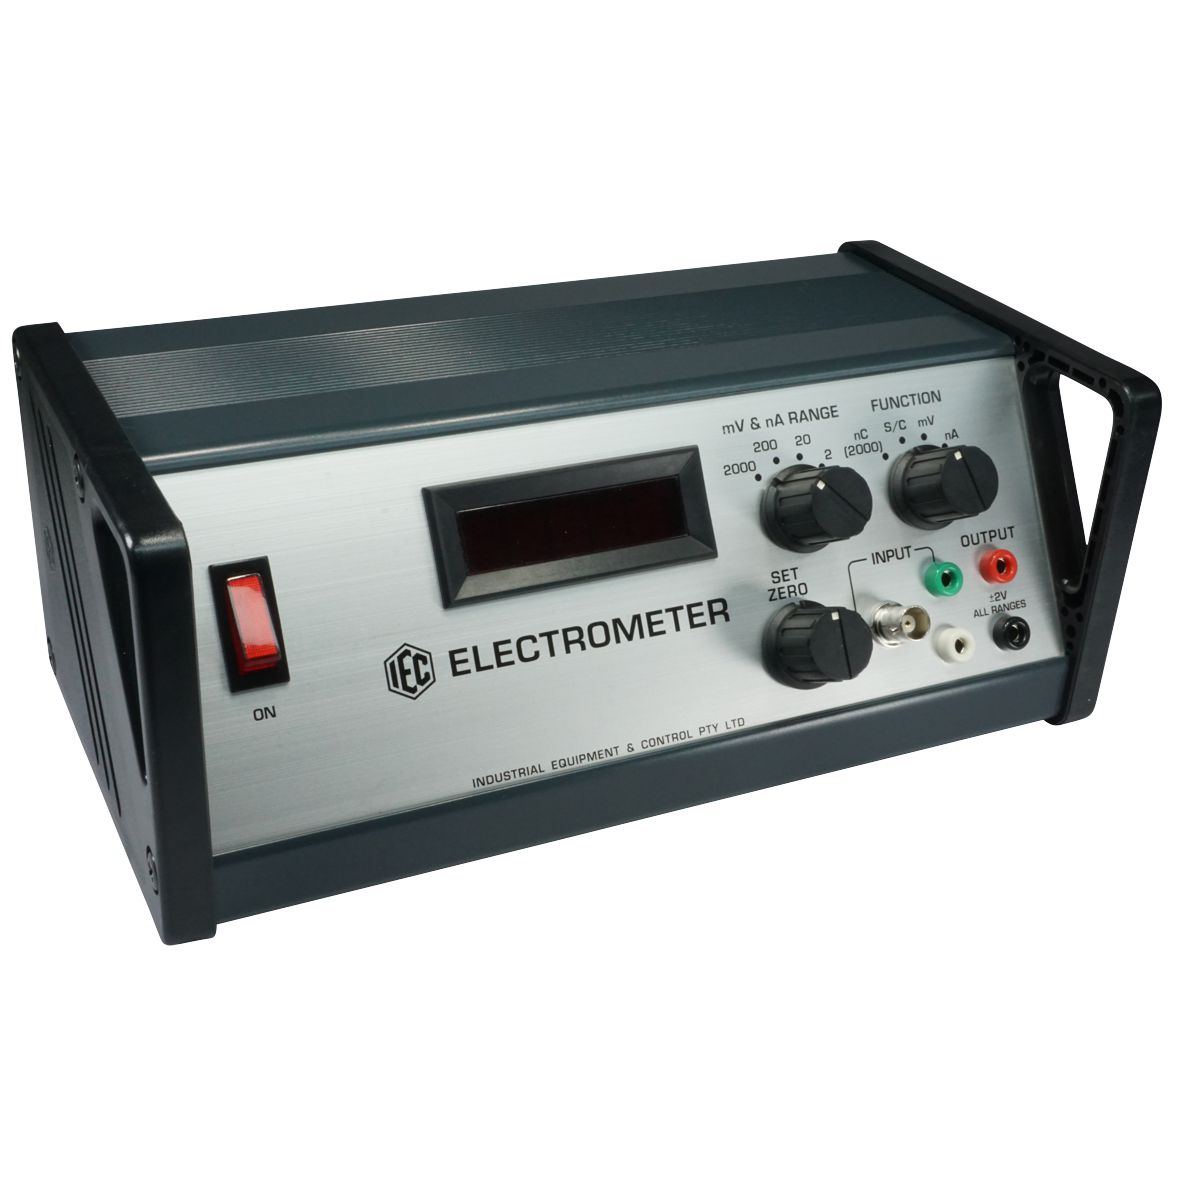 ELECTROMETER DIGITAL VERY HIGH SENSITIVITY